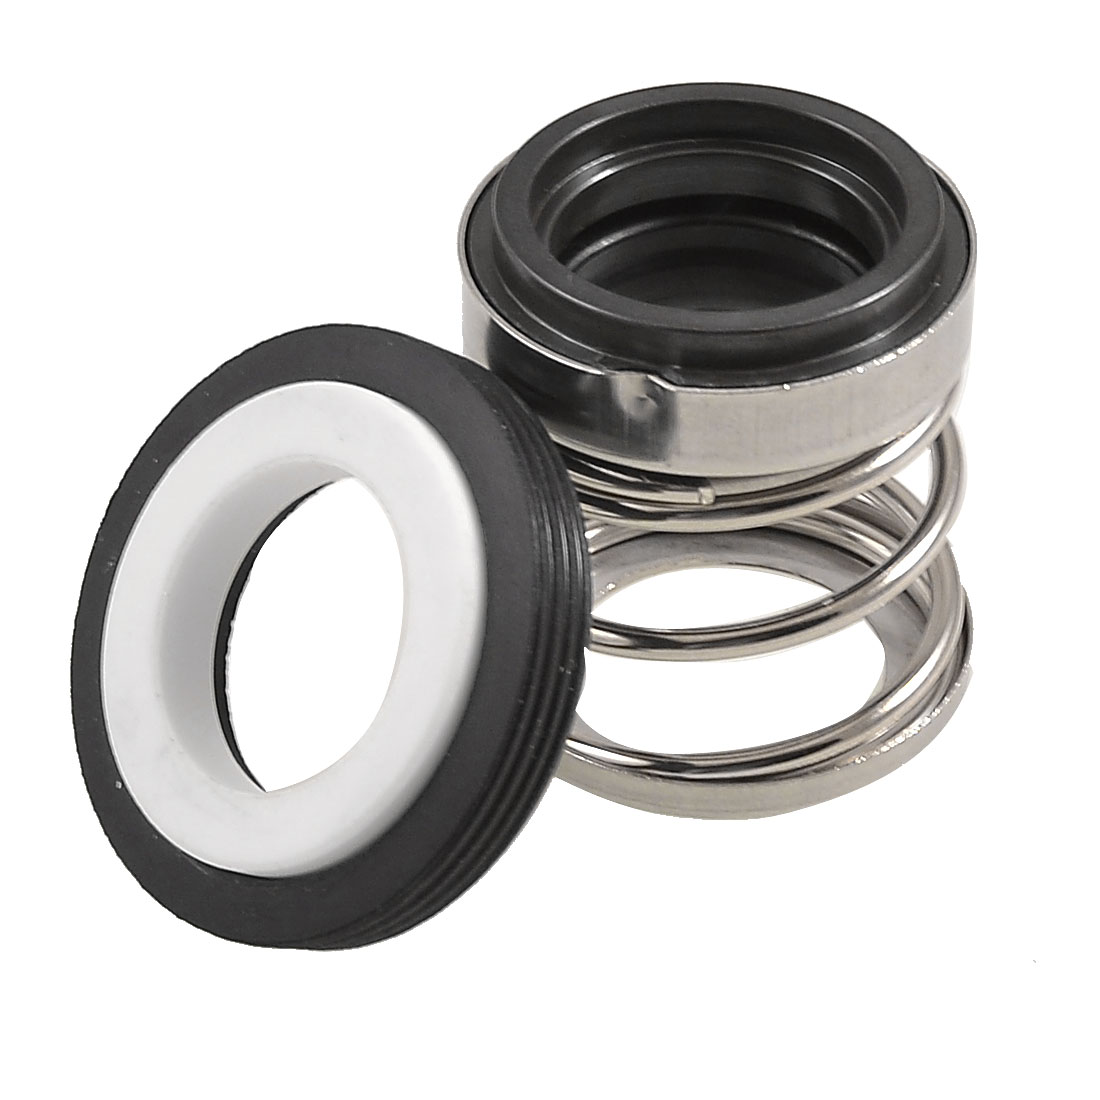 Rubber Bellows Ceramic Rotary Ring 21mm Pump Mechanical Seal